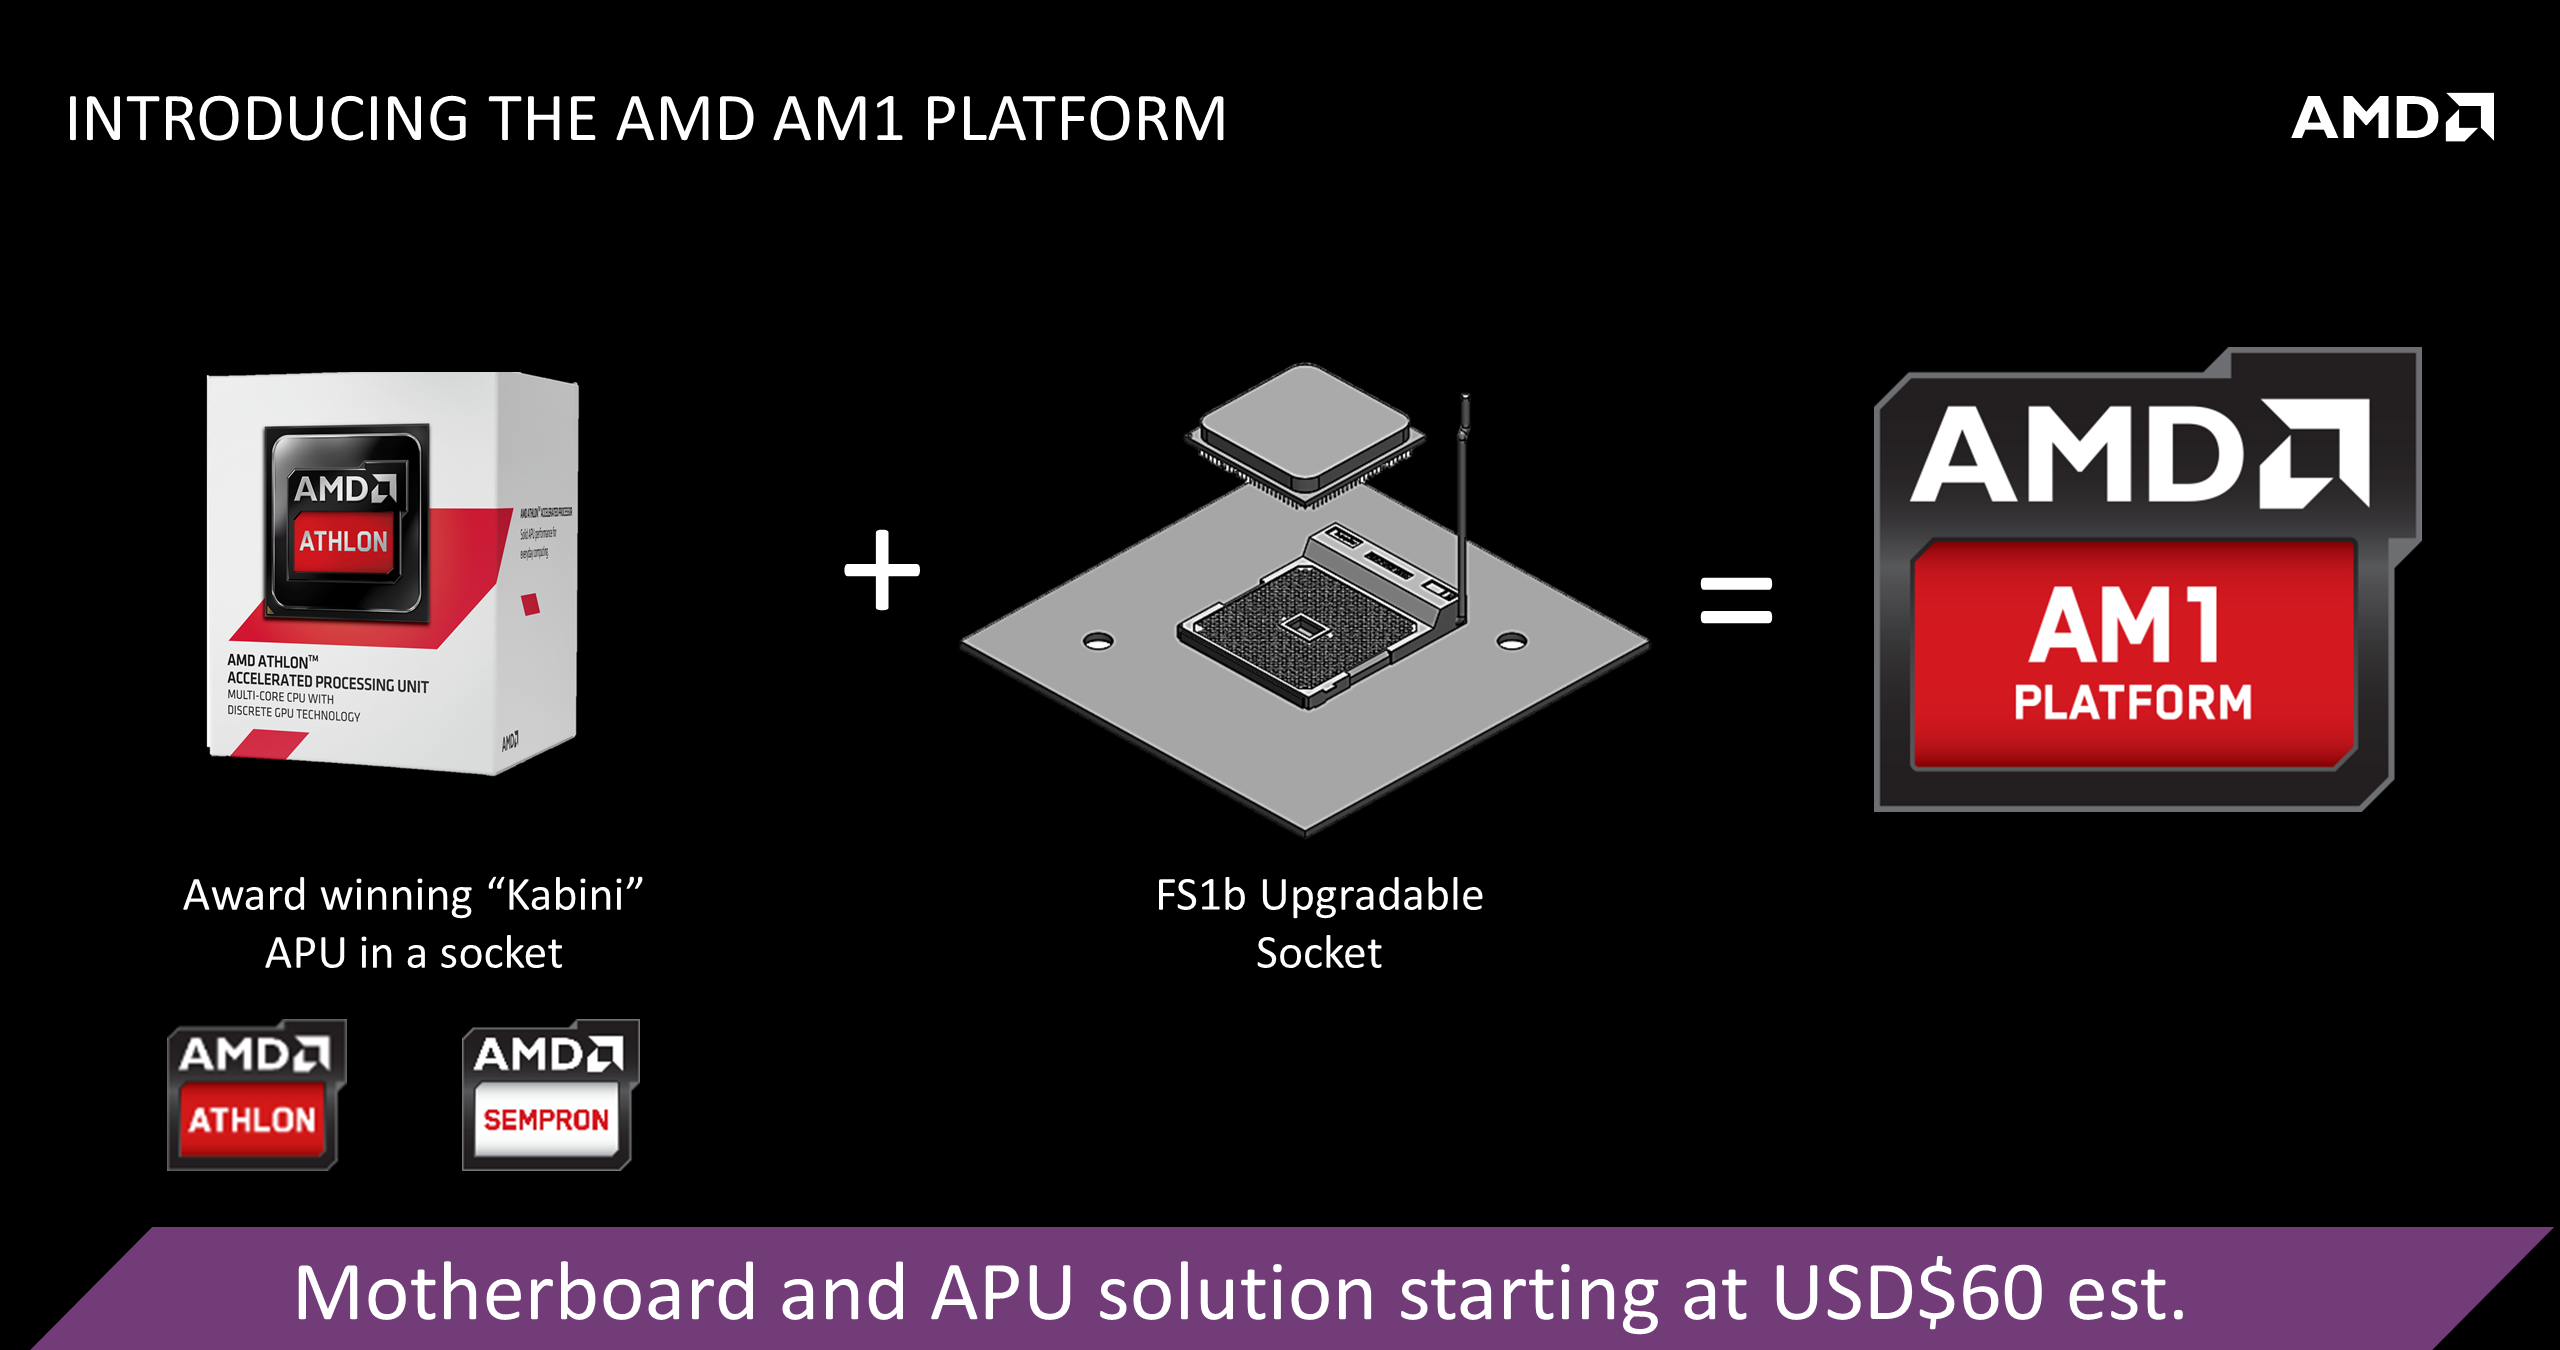 Amd Athlon 5150 And Athlon 5350 Am1 Socketed Kabini Apus Start Selling In Us Official Launch On 9th April